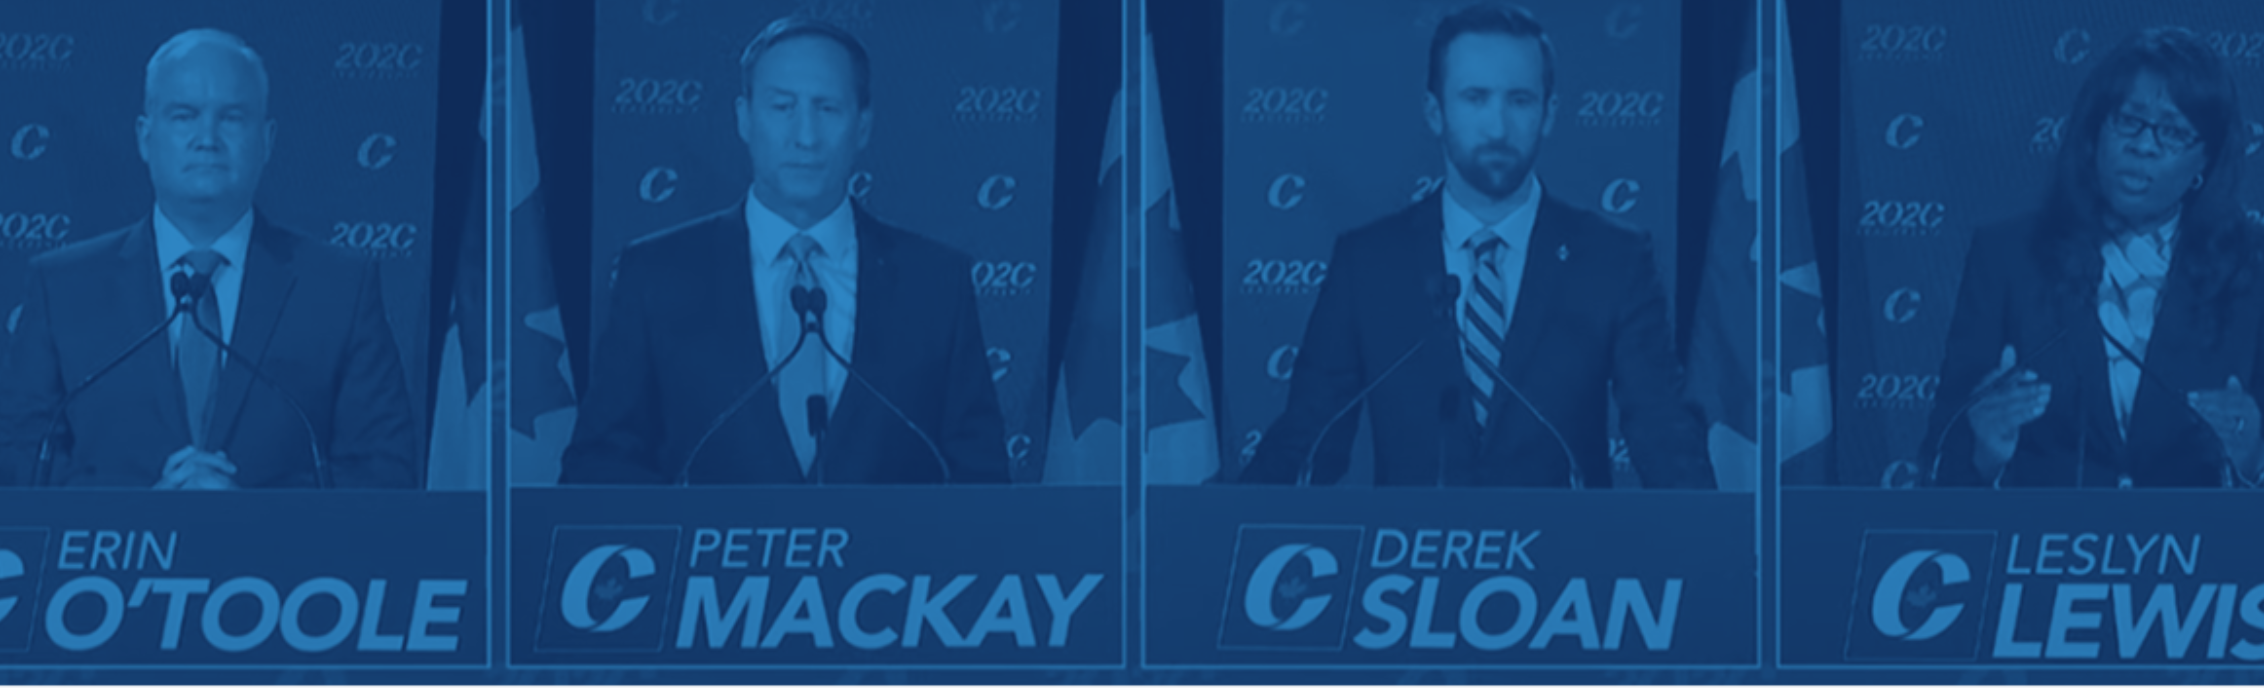 Four Conservative Party of Conservative leadership candidates